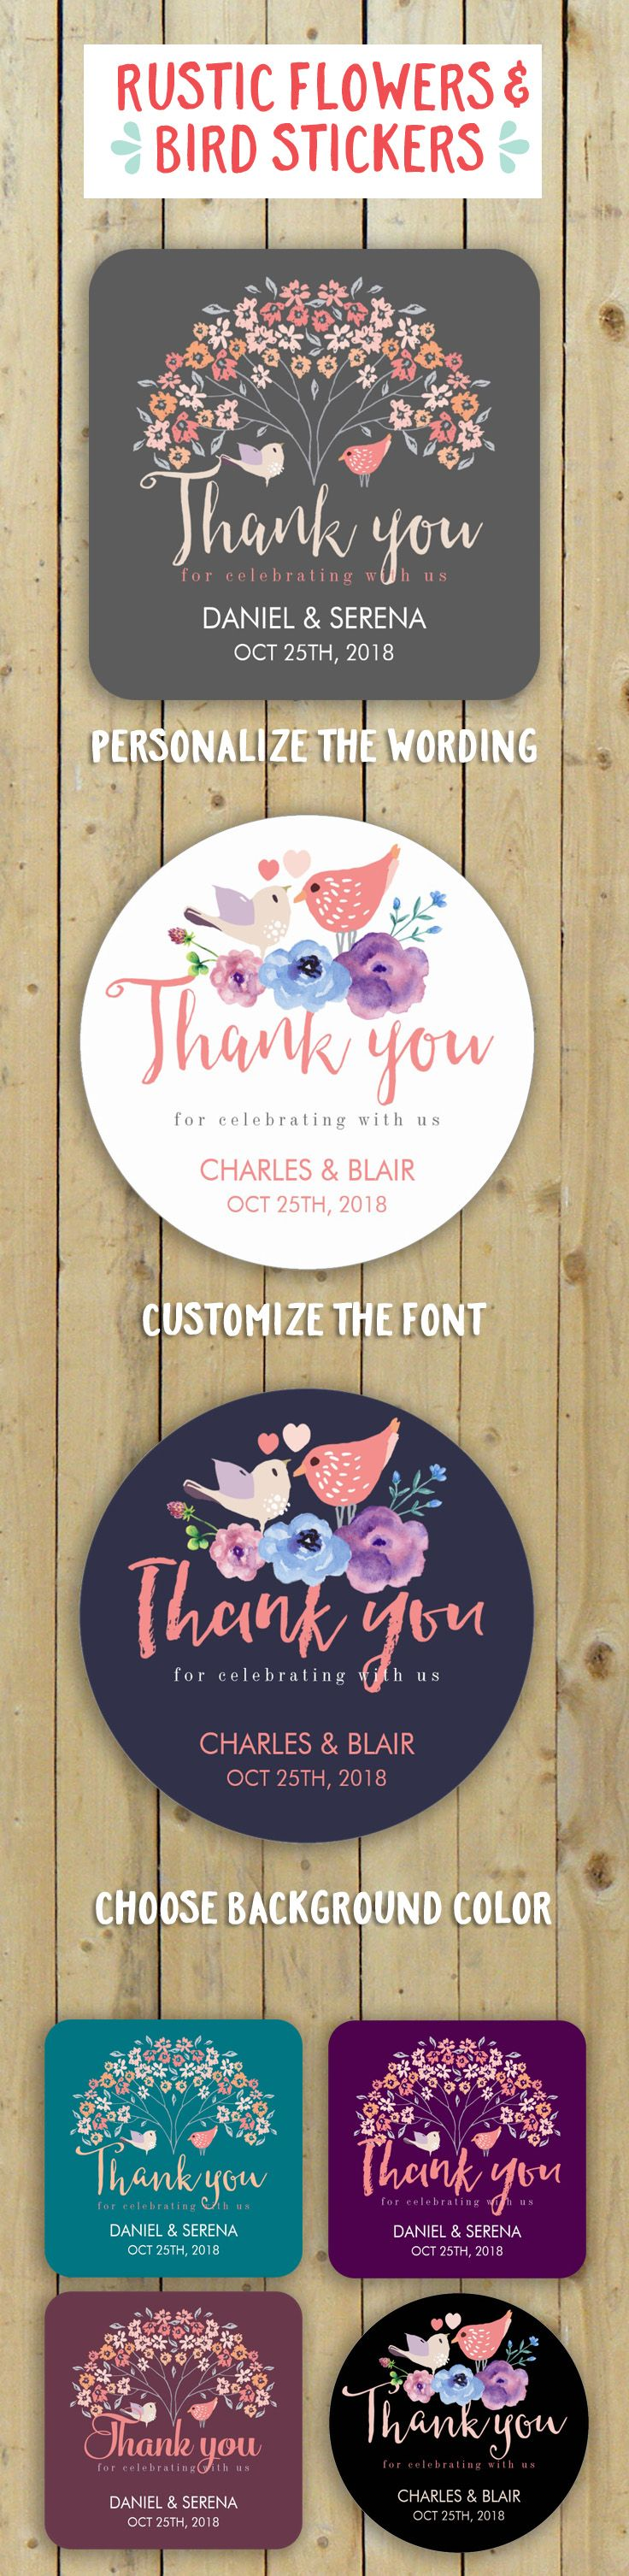 Wedding decorations themes ideas october 2018 Grey Birds Floral Script Thank You Wedding Sticker  wedding favours